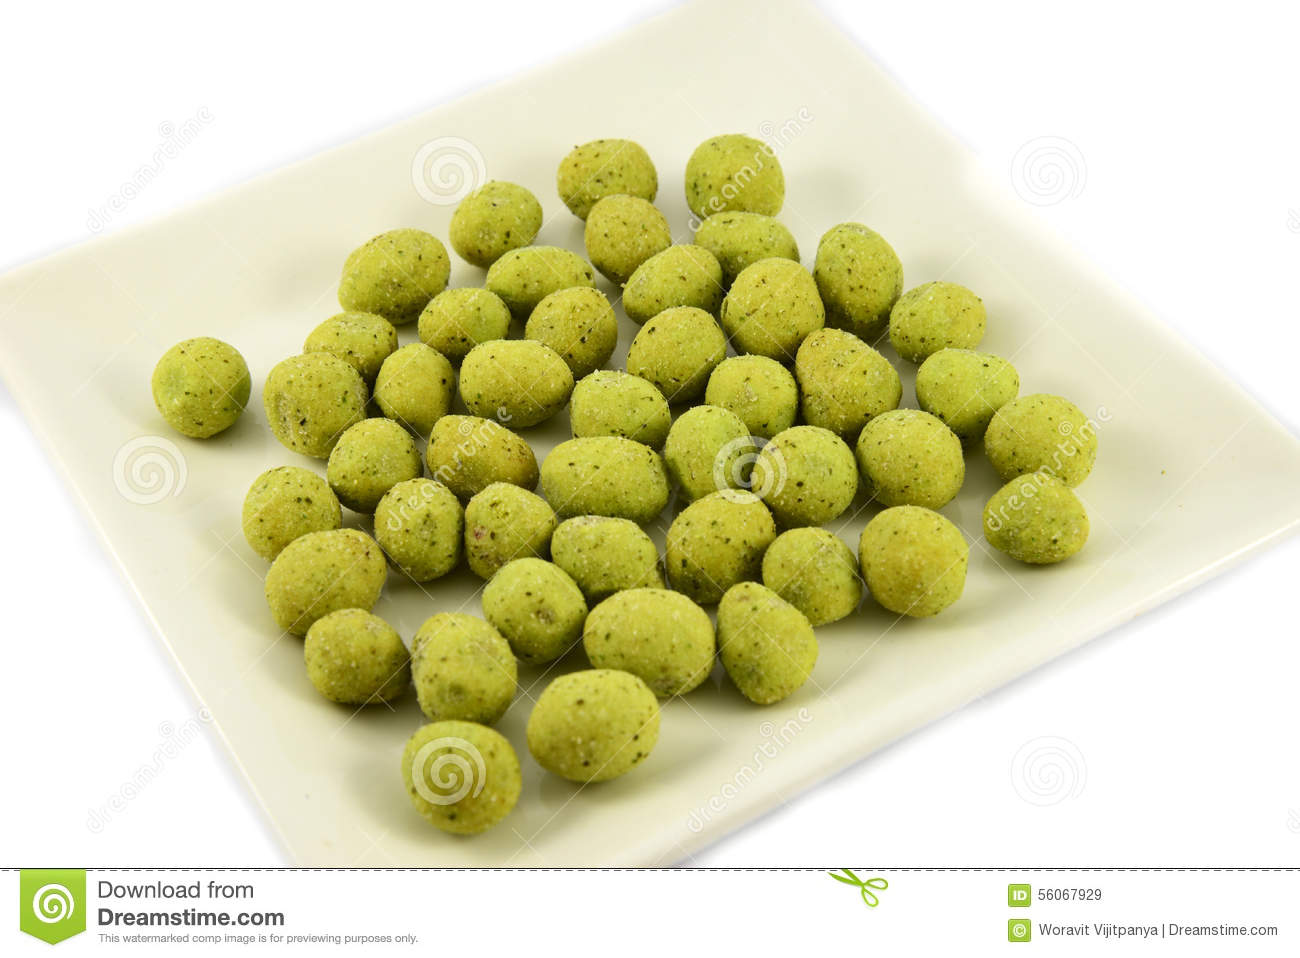 how to make wasabi peanuts